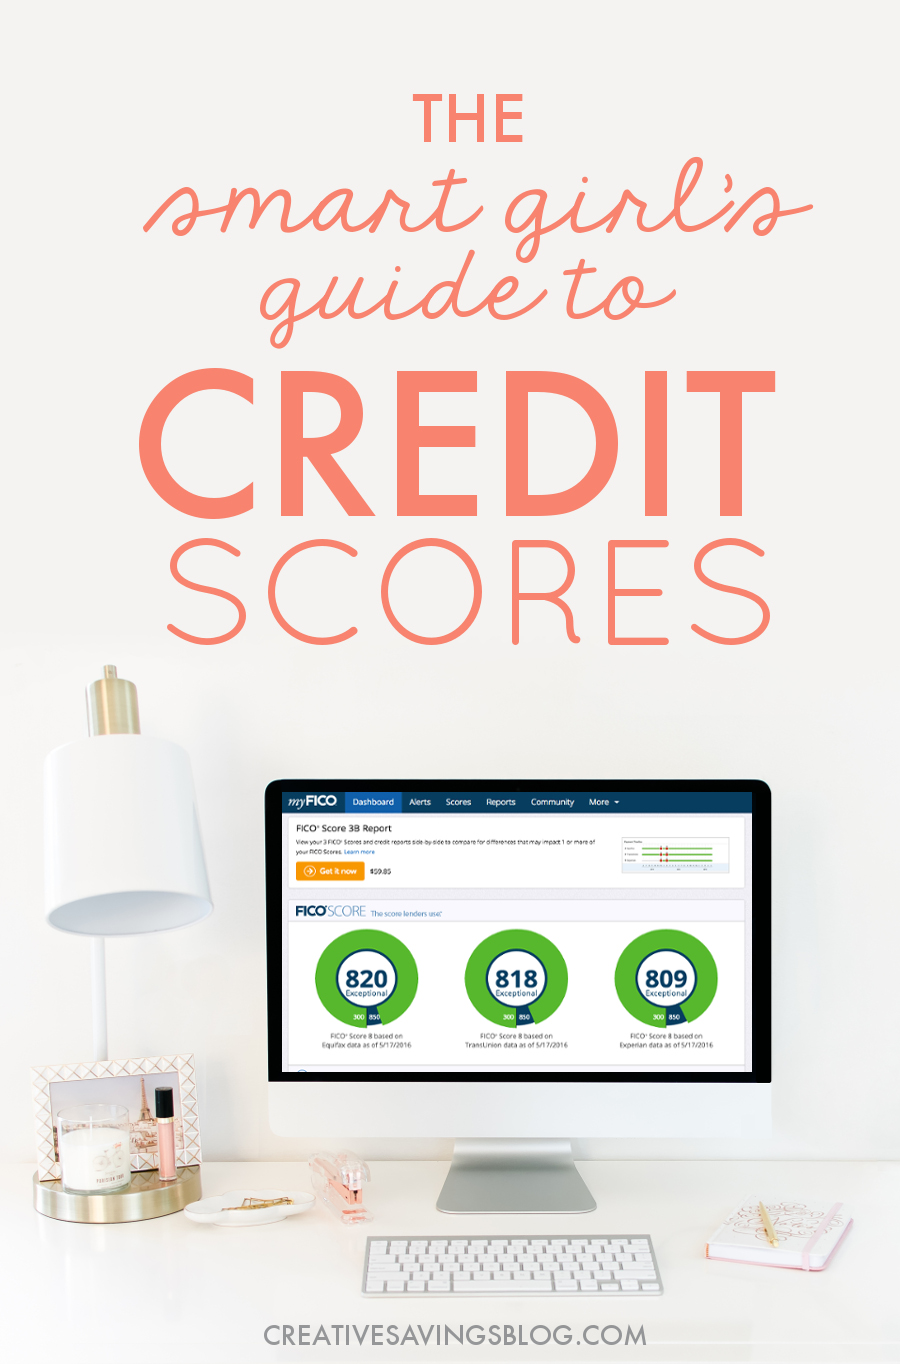 Confused About Credit Scores? Thisprehensive Post Leads You Stepbystep  Through The Smart Girl's Guide To How To Build